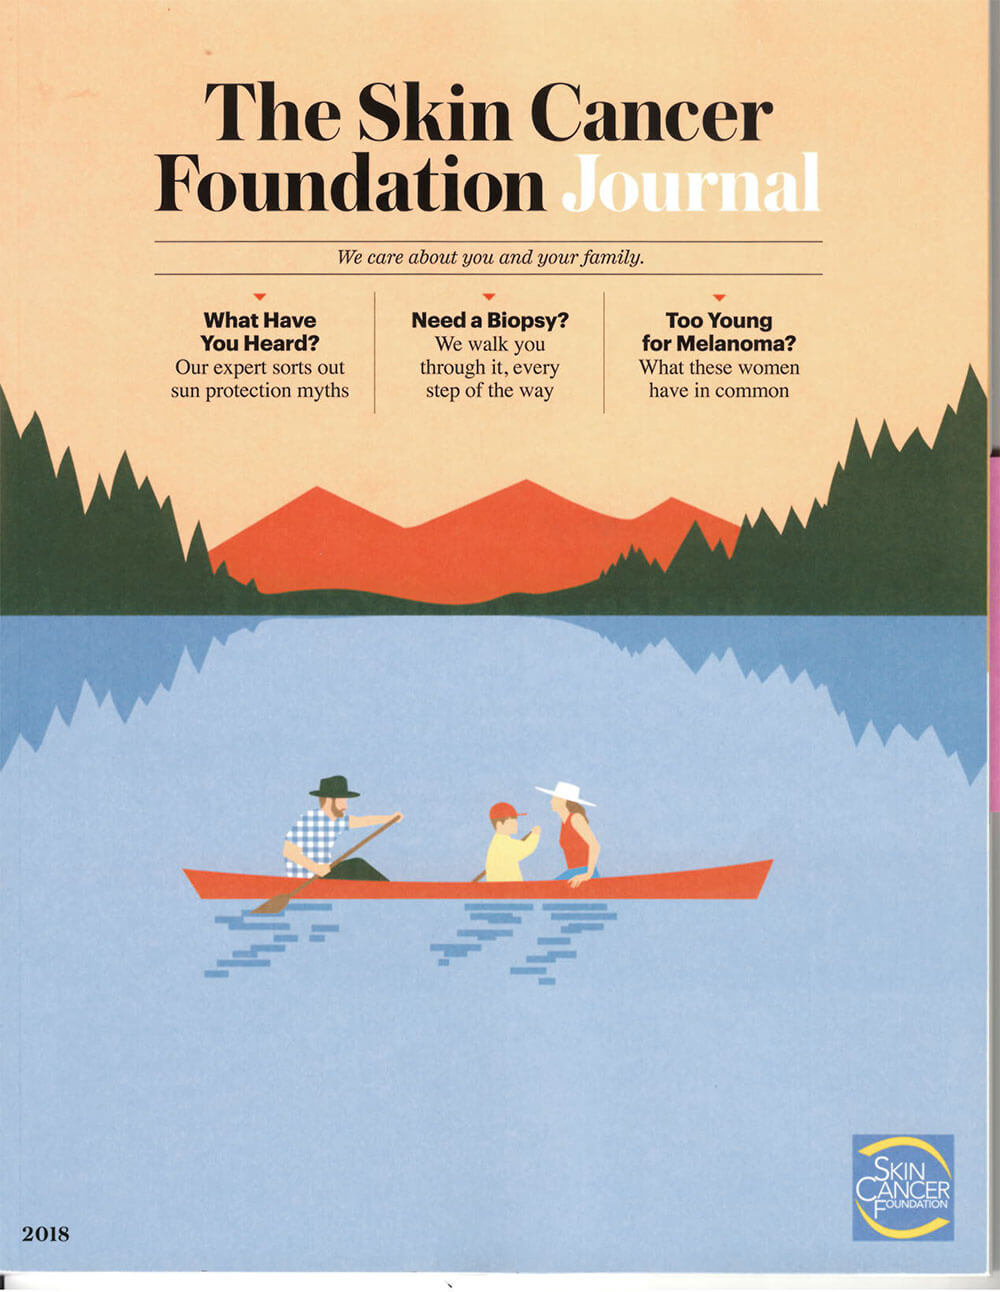 The Skin Cancer Foundation Journal 2018